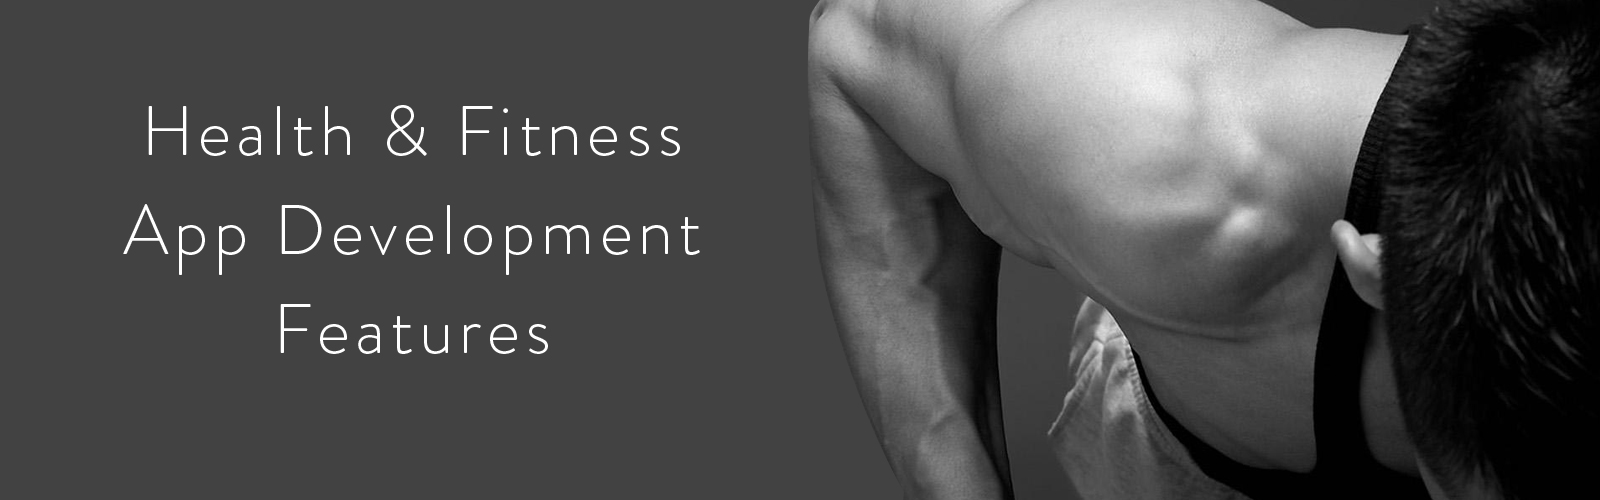 Health & Fitness app development solutions.